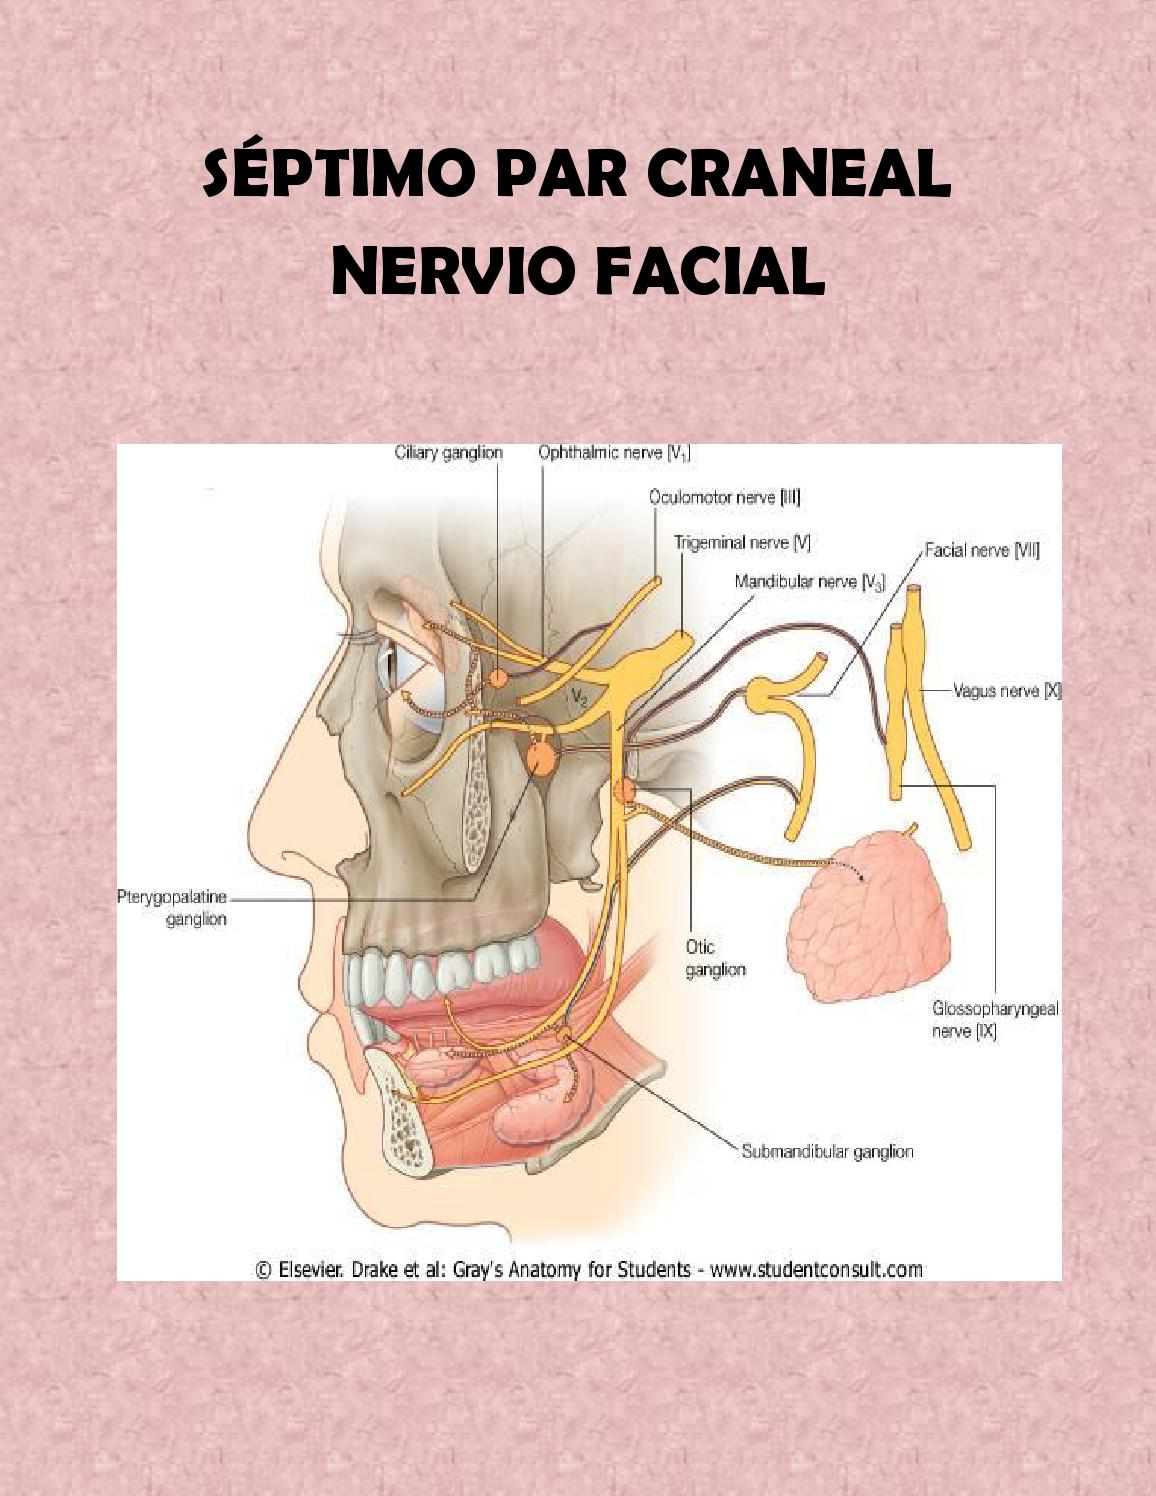 Séptimo par craneal docx (IPETH) by Ipeth DF - issuu